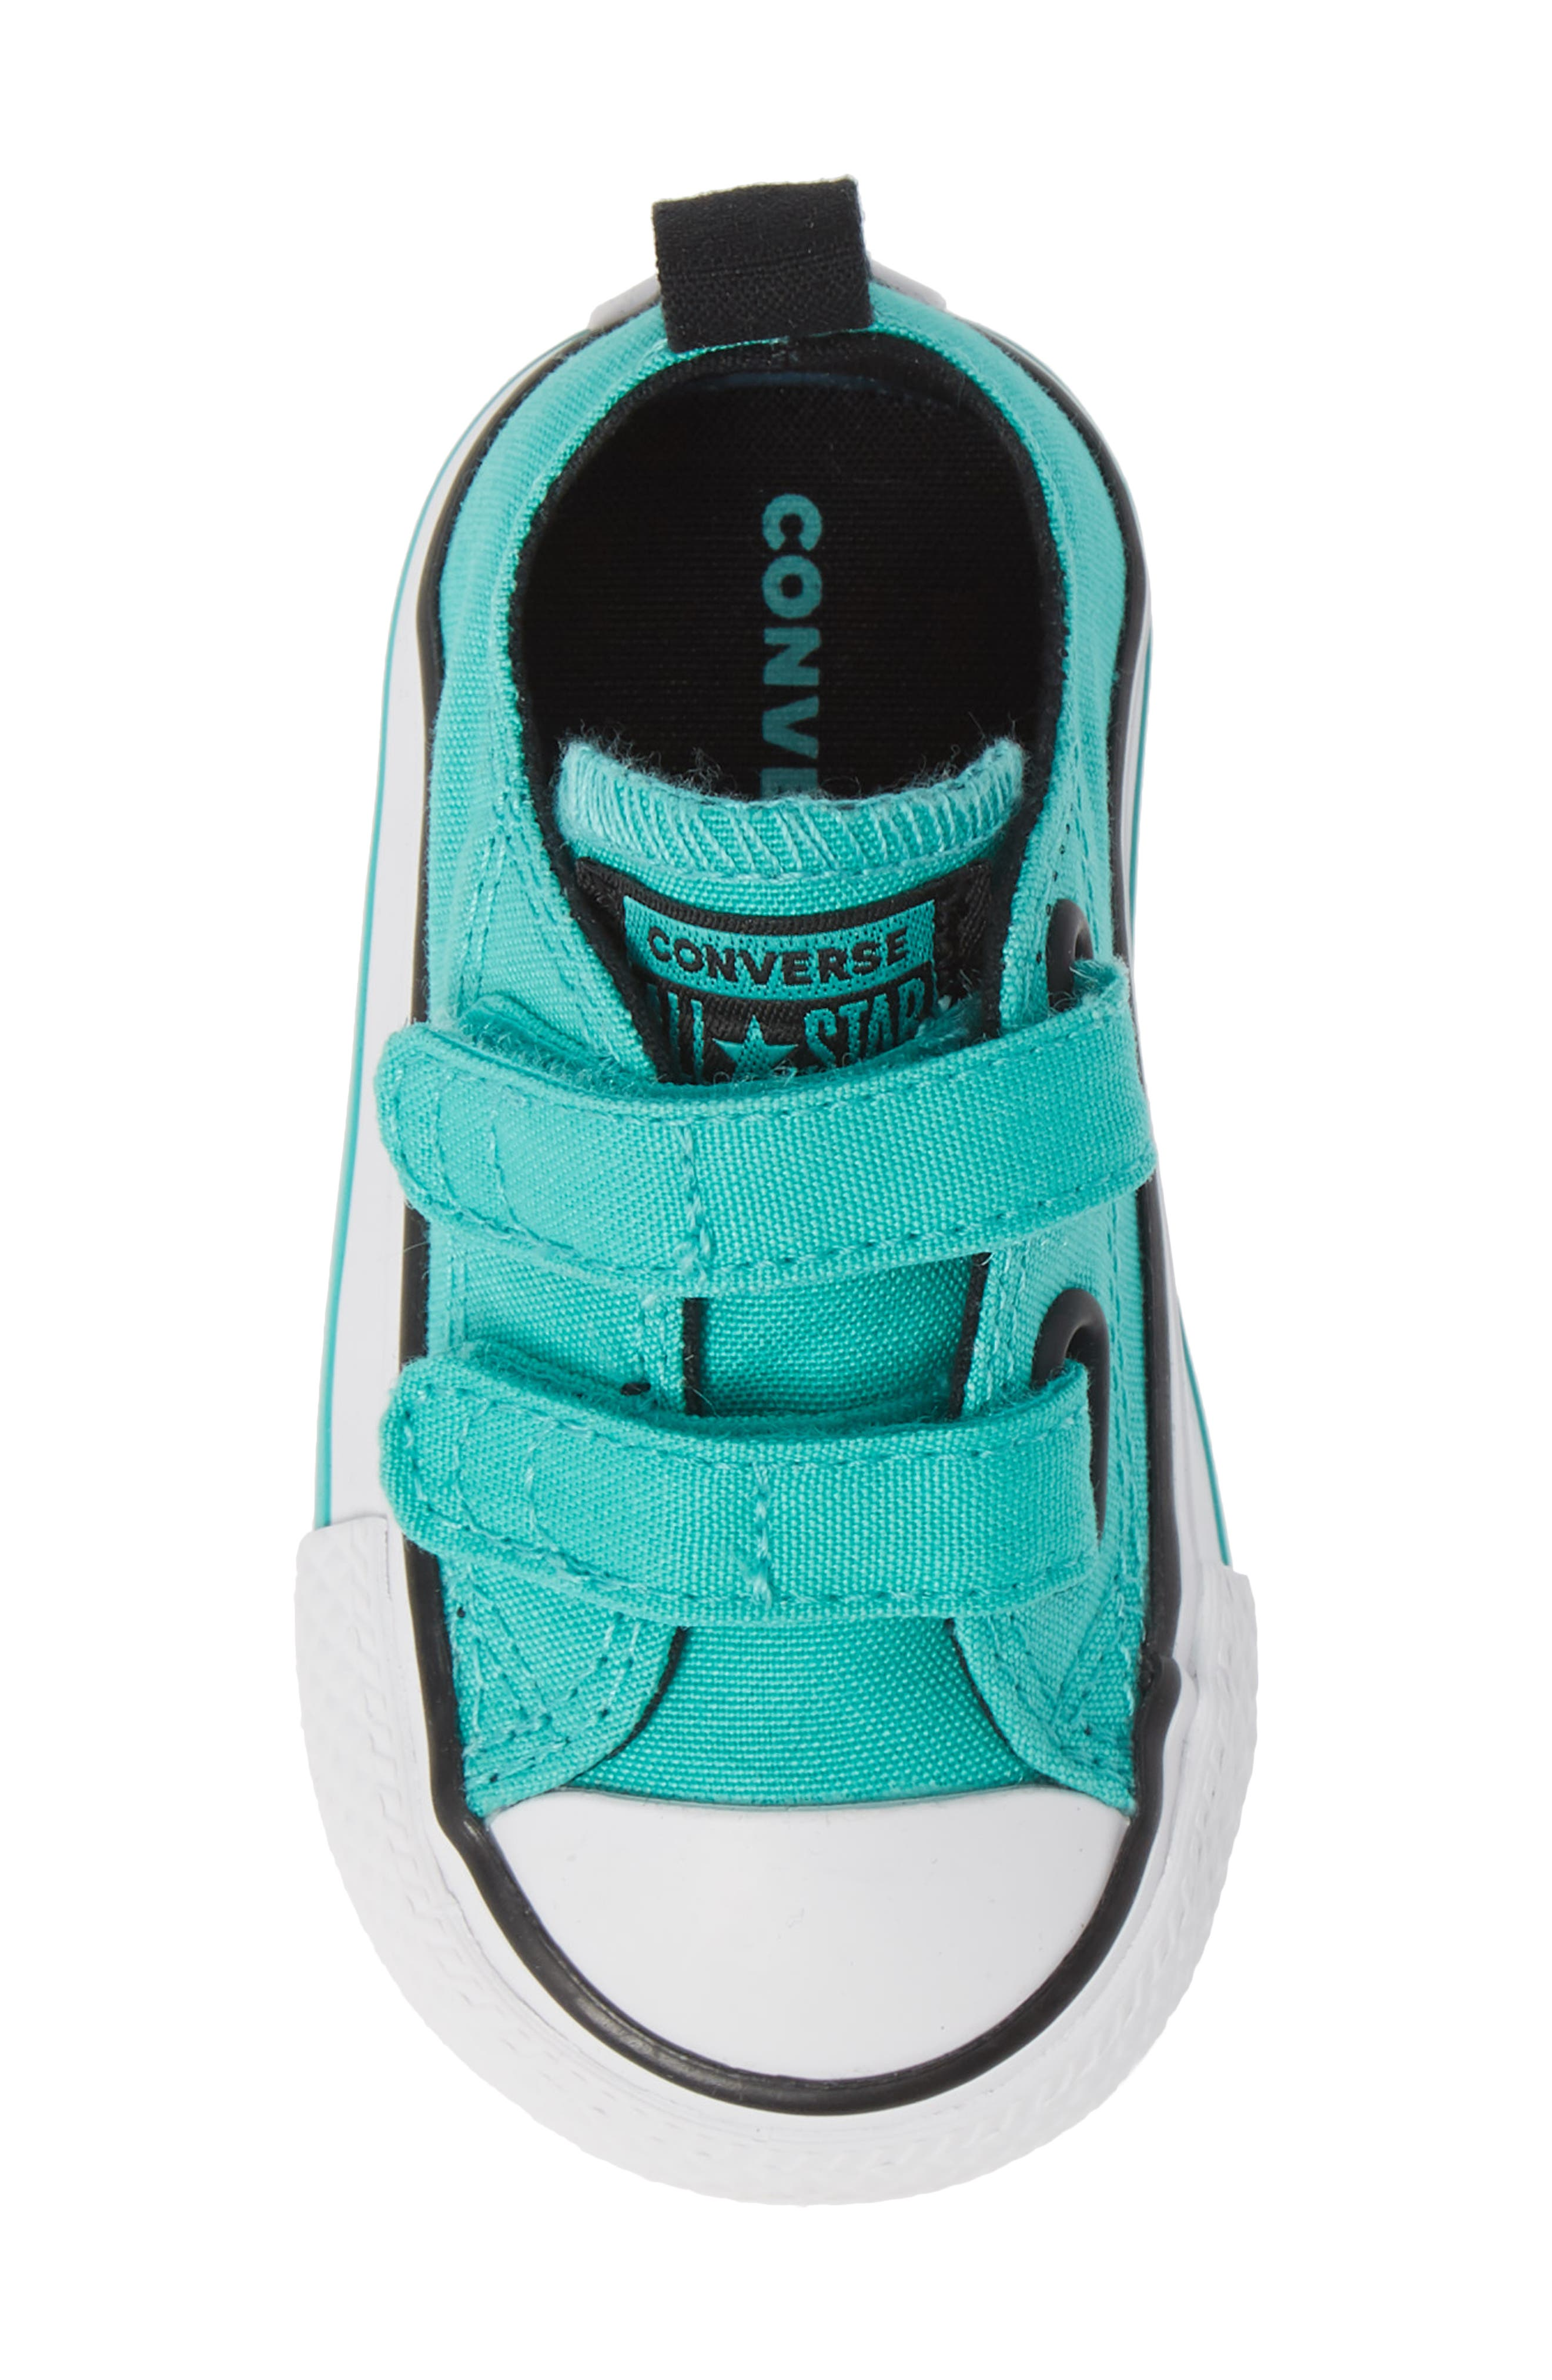 Chuck Taylor<sup>®</sup> 'Double Strap' Sneaker,                             Alternate thumbnail 5, color,                             PURE TEAL